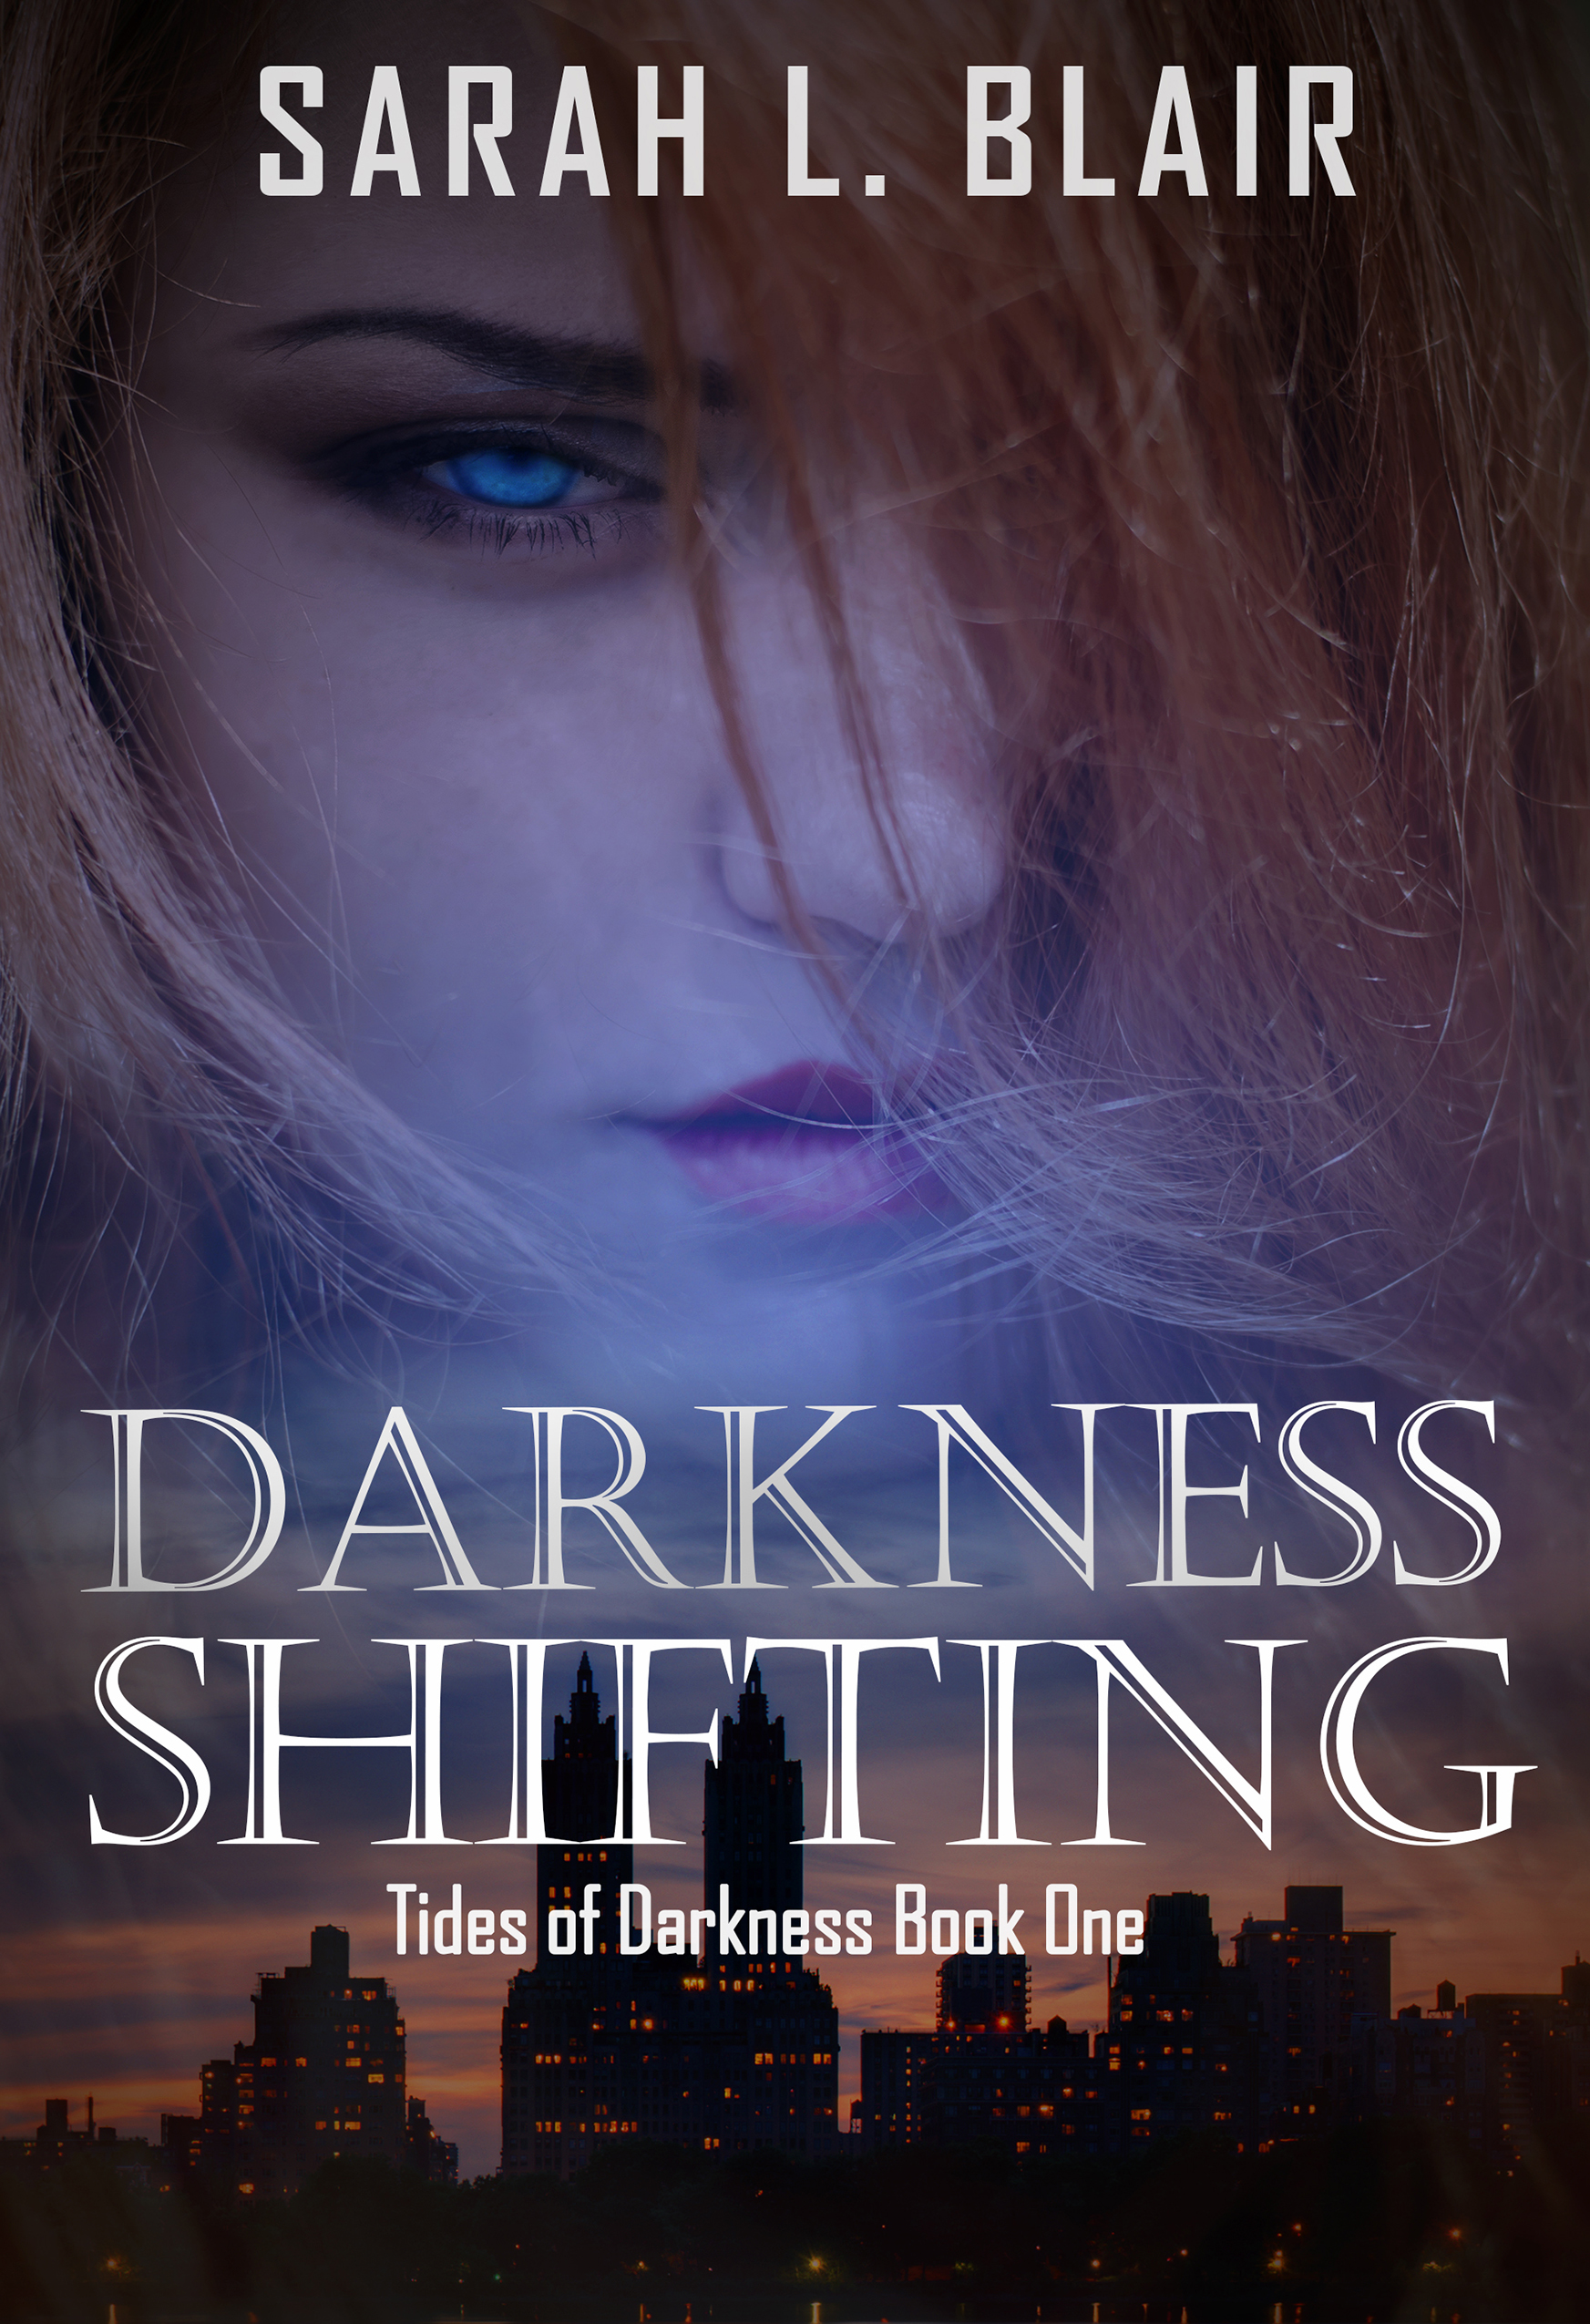 New Release: Sarah L. Blair's DARKNESS SHIFTING